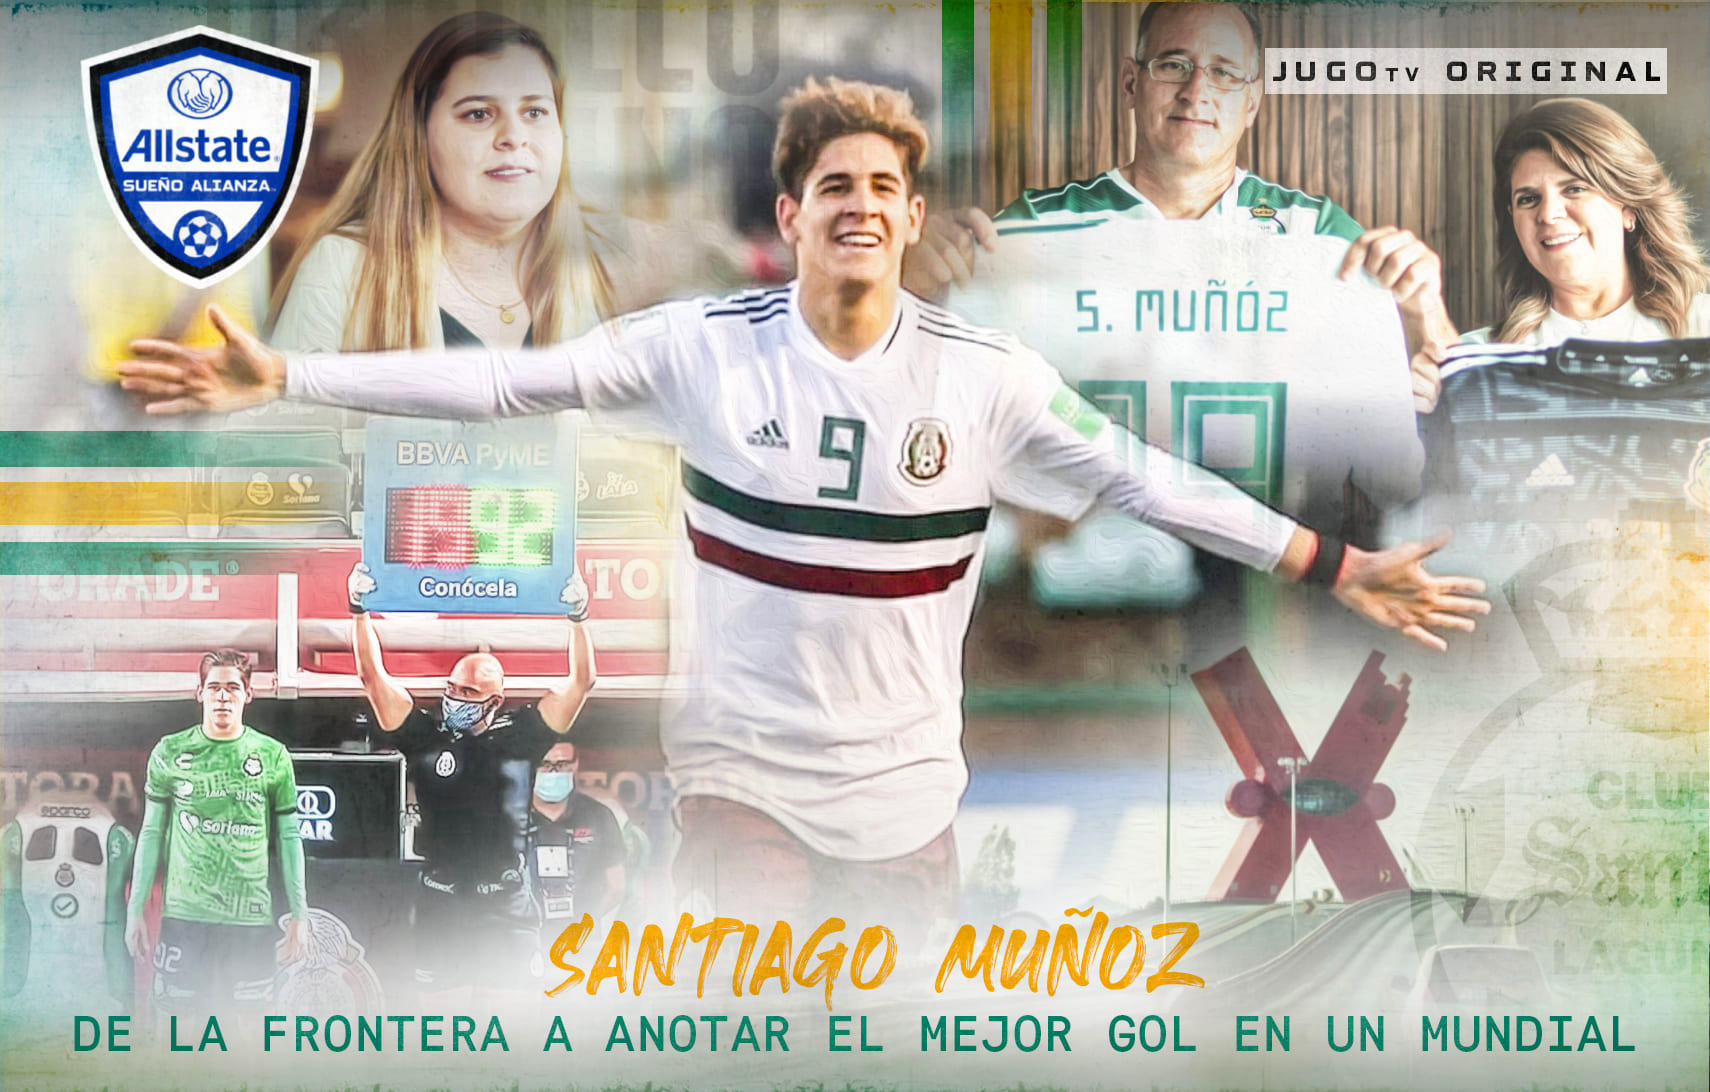 Santiago Muñoz, scored the best during the WorldCup U17